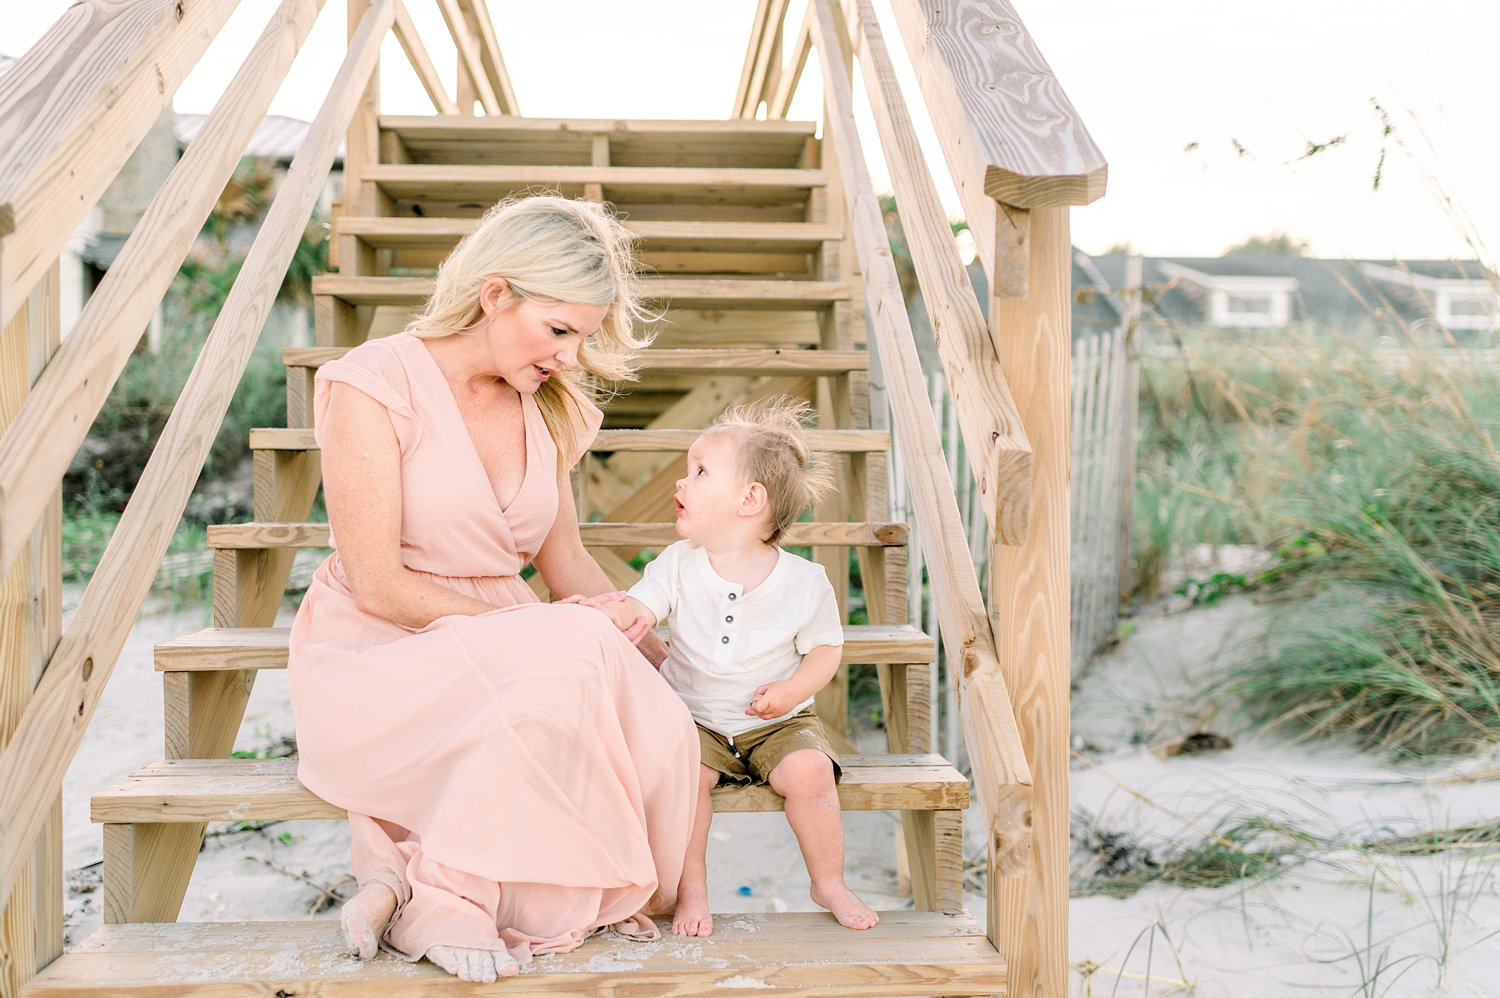 mommy and son sitting on wooden beach stairs, sandy feet, beach homes in background, Rya Duncklee